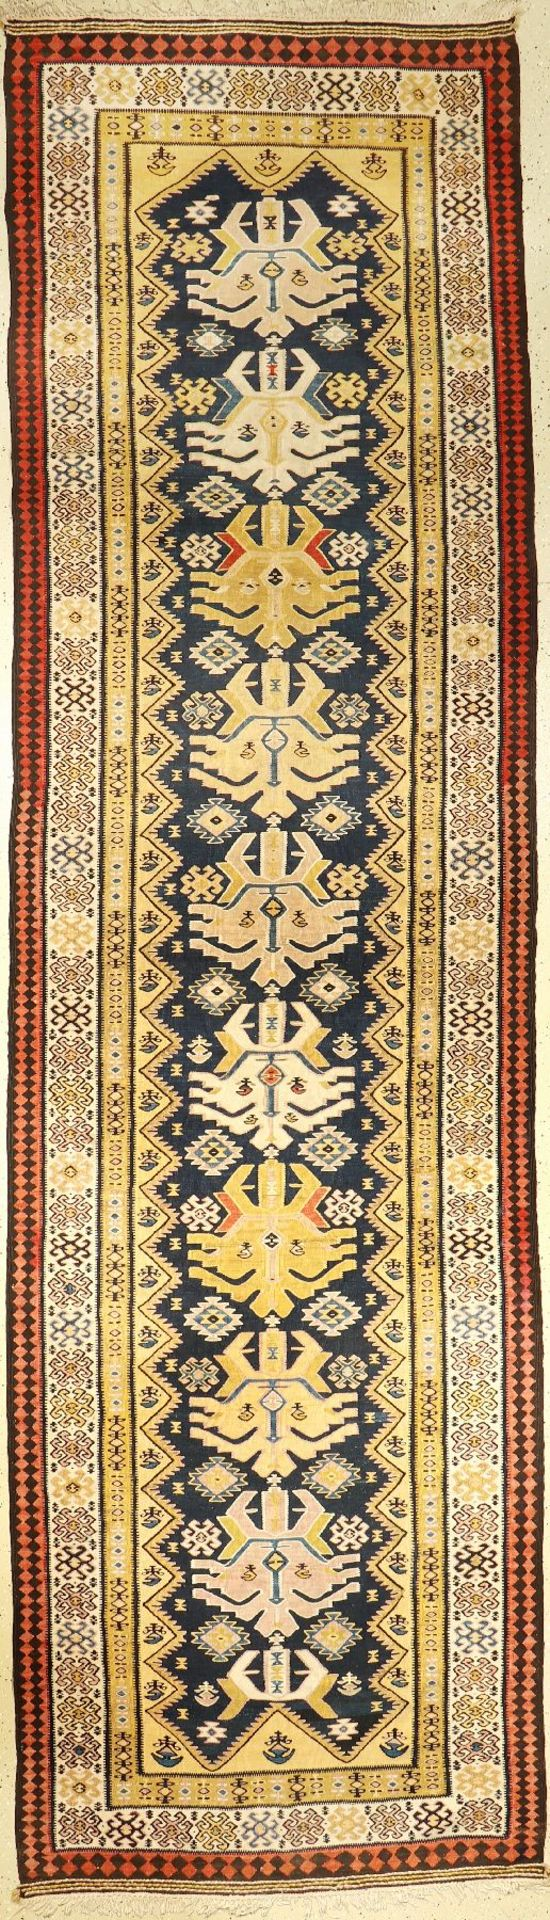 Northwest Persian Kilim, Persia, around 1930, wool on cotton, approx. 448 x 126 cm, condition: 2.